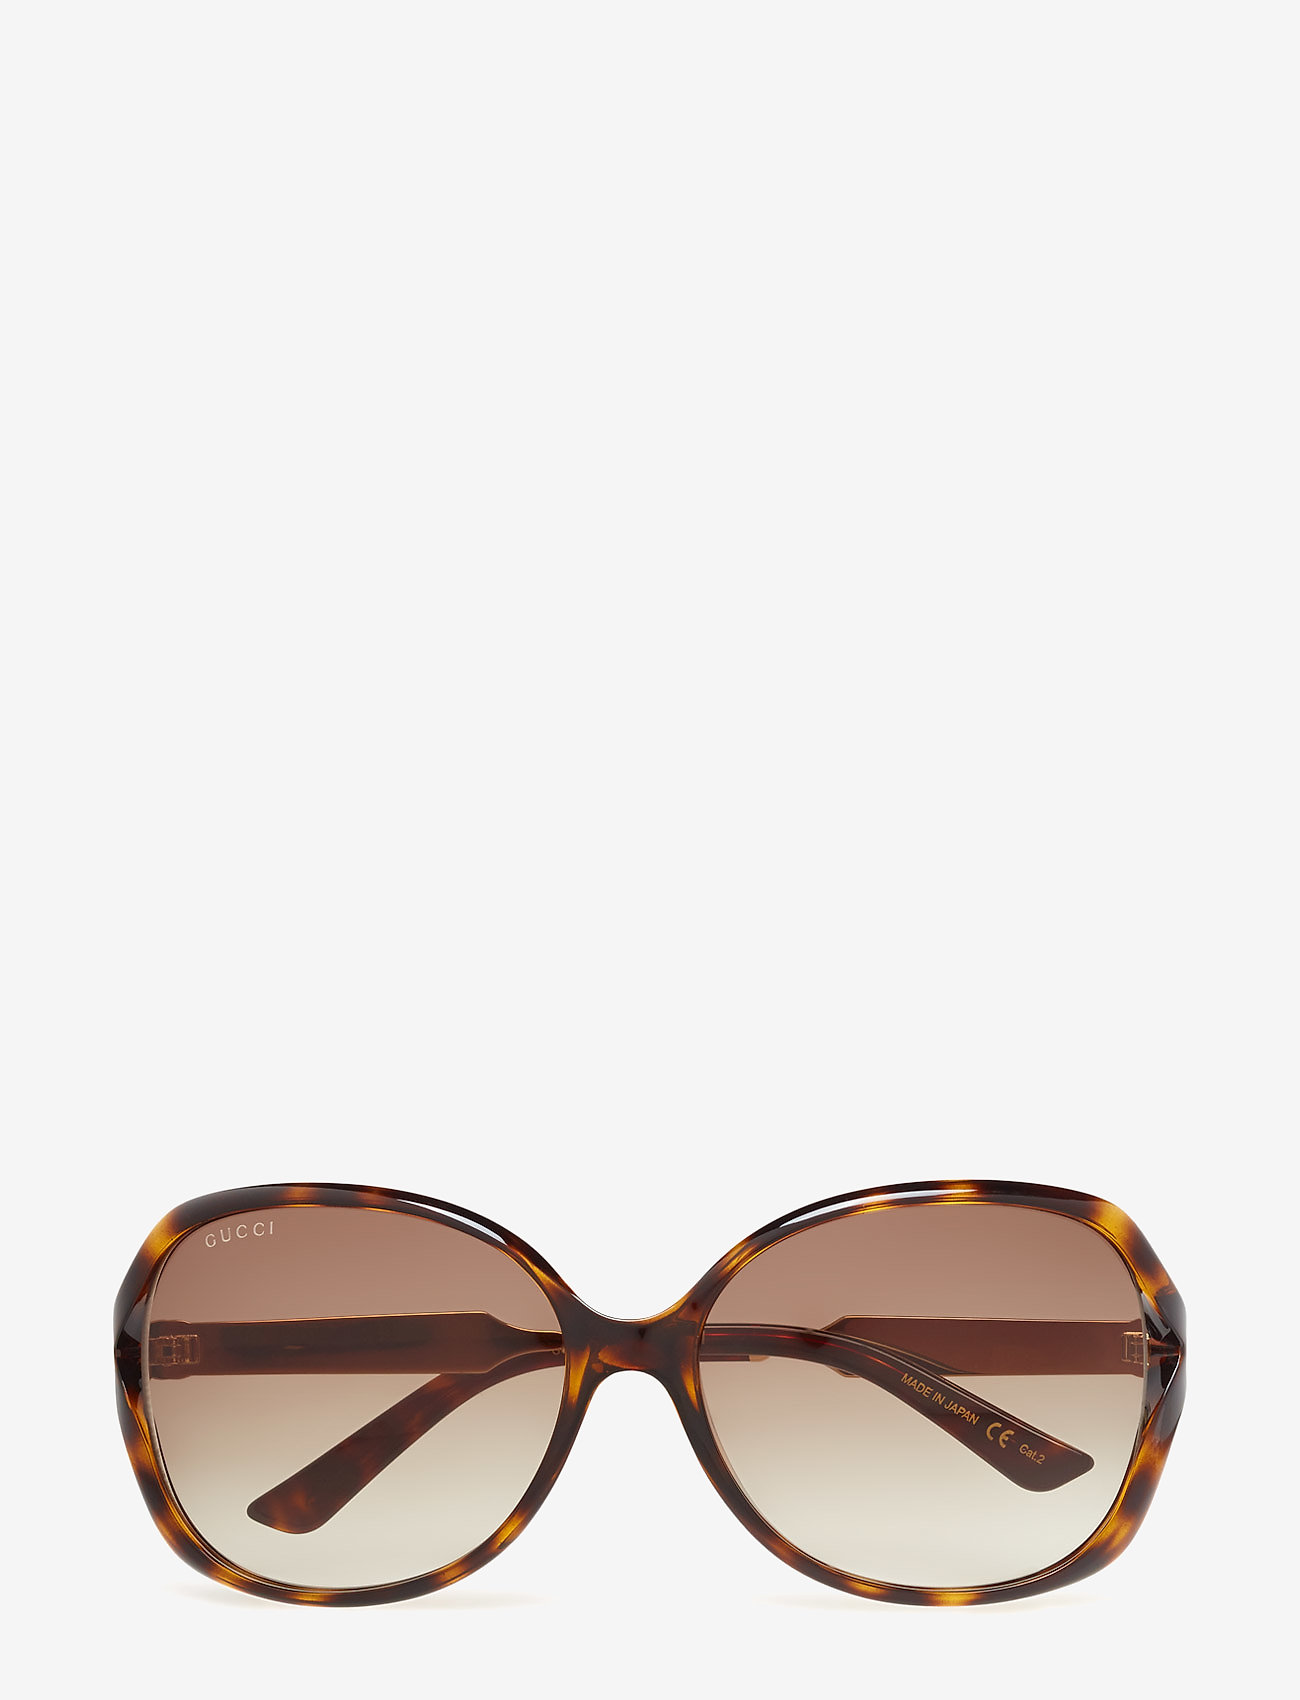 Gucci Sunglasses - GG0076S - round frame - avana-gold-brown - 0